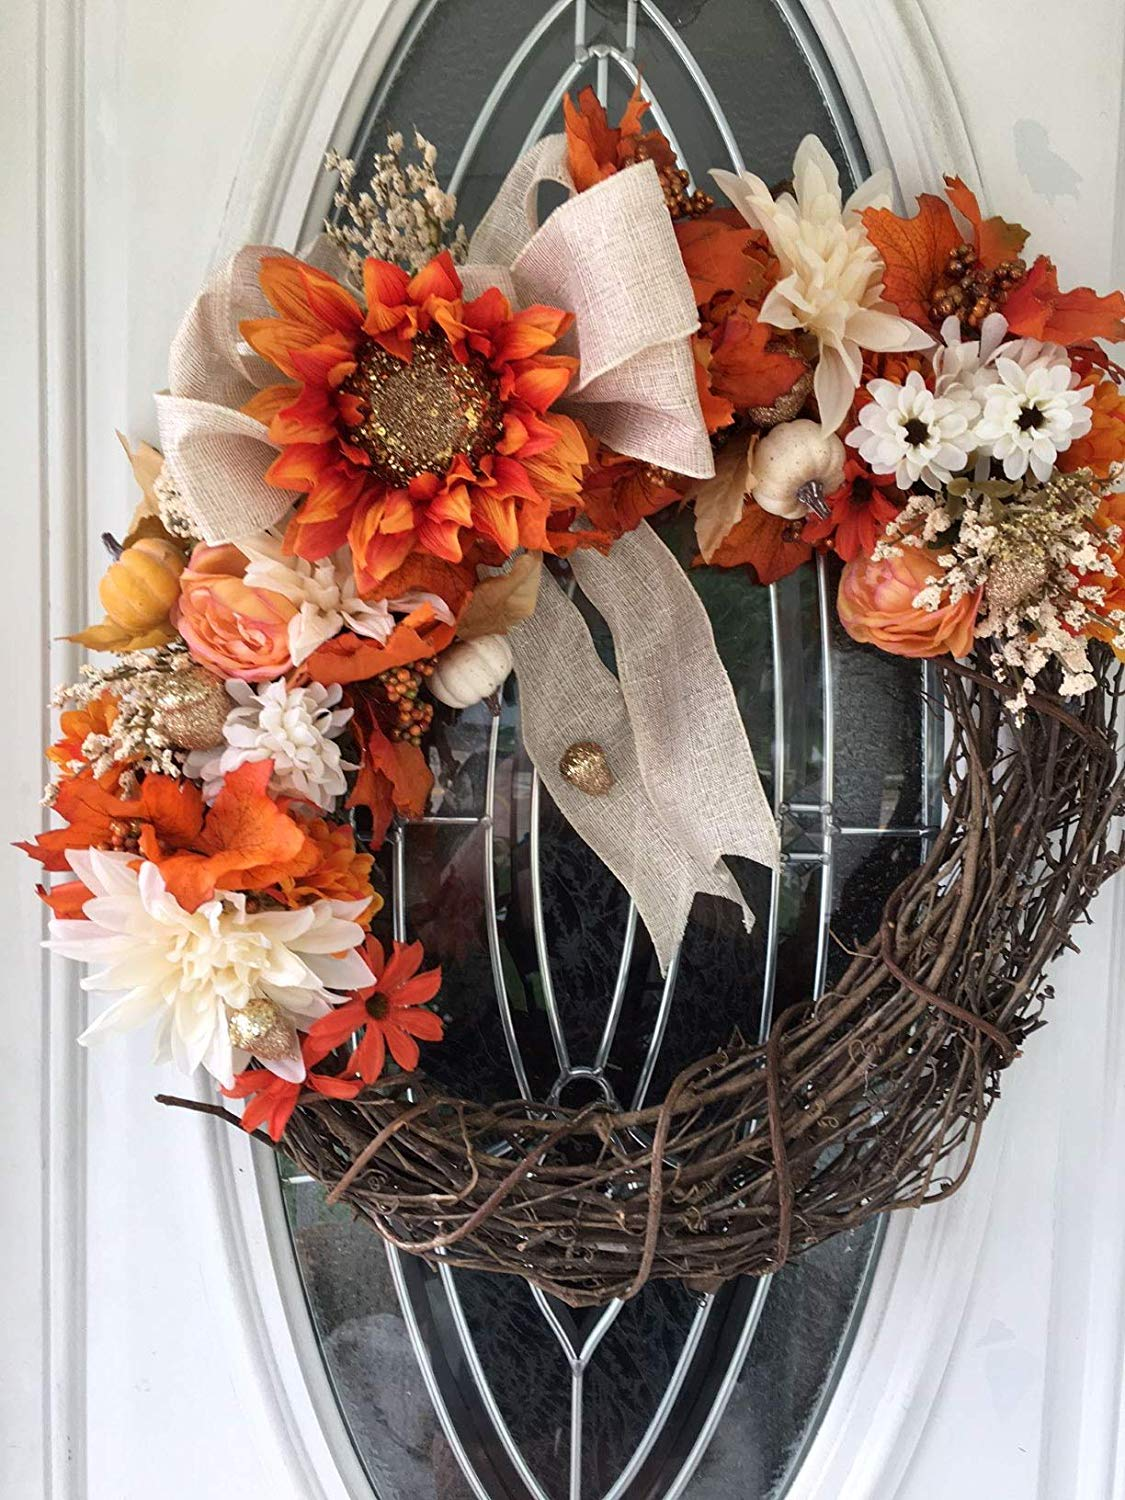 Fall Wreath, Fall Grapevine Wreath for Front Door, Door Wreath, Thanksgiving, Fall Harvest, Sunflowers, Indoor Outdoor Wreath, Ready to Ship for Free**